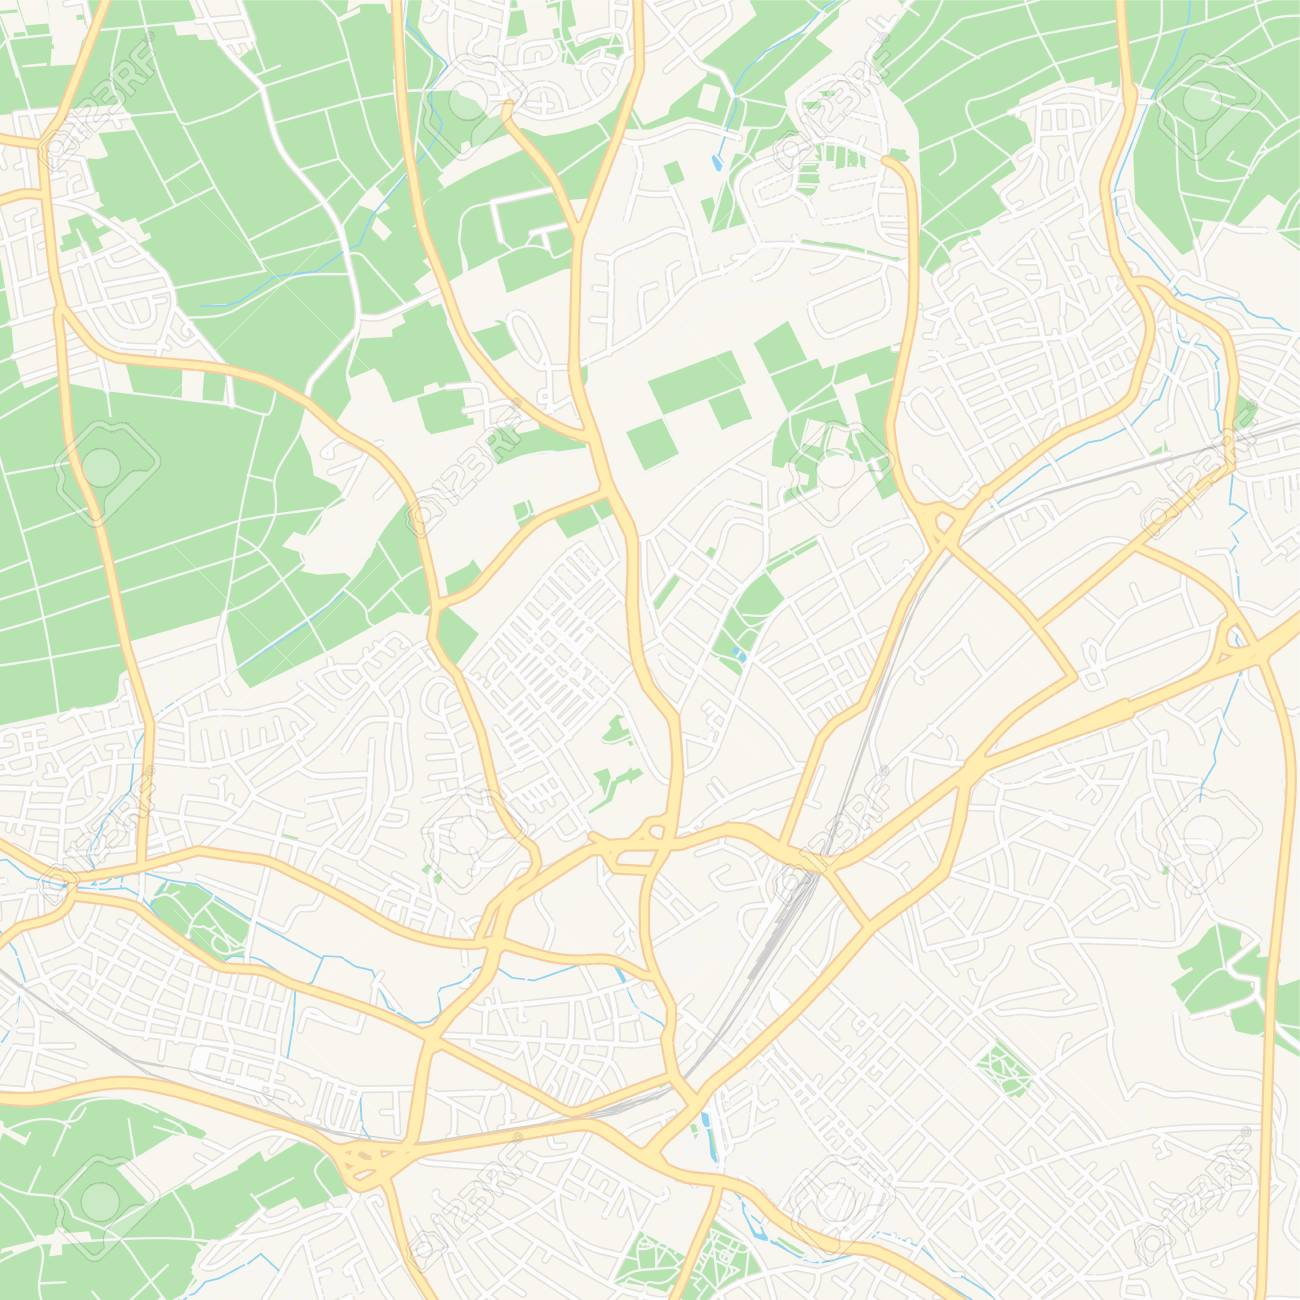 Free Printable Map Of Germany.Printable Map Of Reutlingen Germany With Main And Secondary